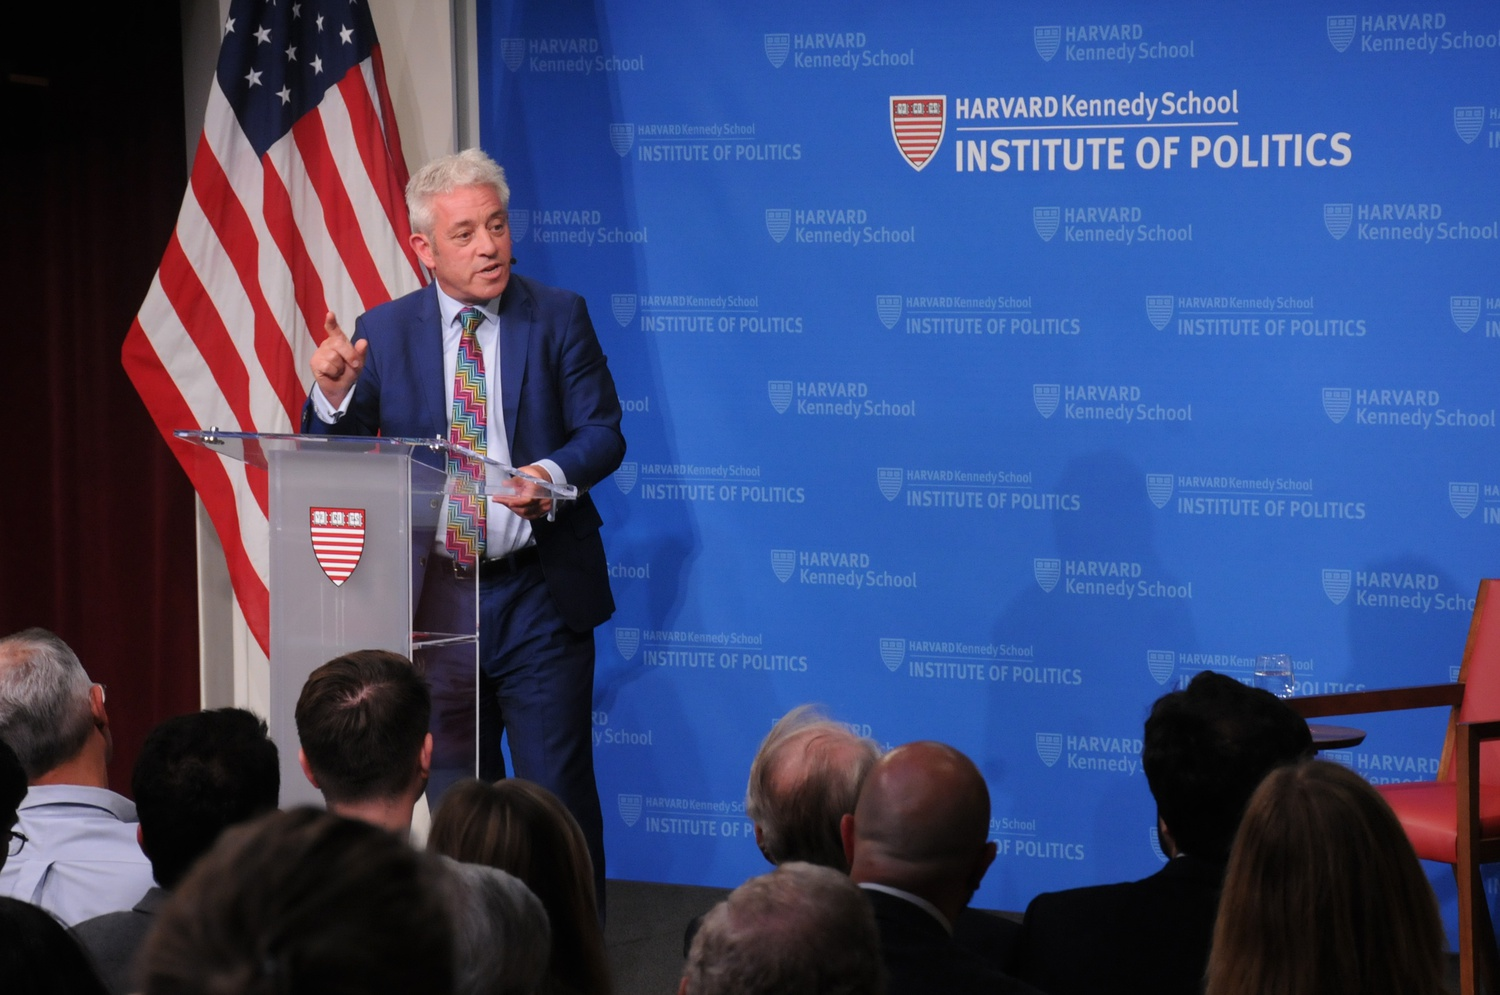 The Right Honorable John Bercow discussed his role as the speaker of the British House of Commons at a public address Monday evening.